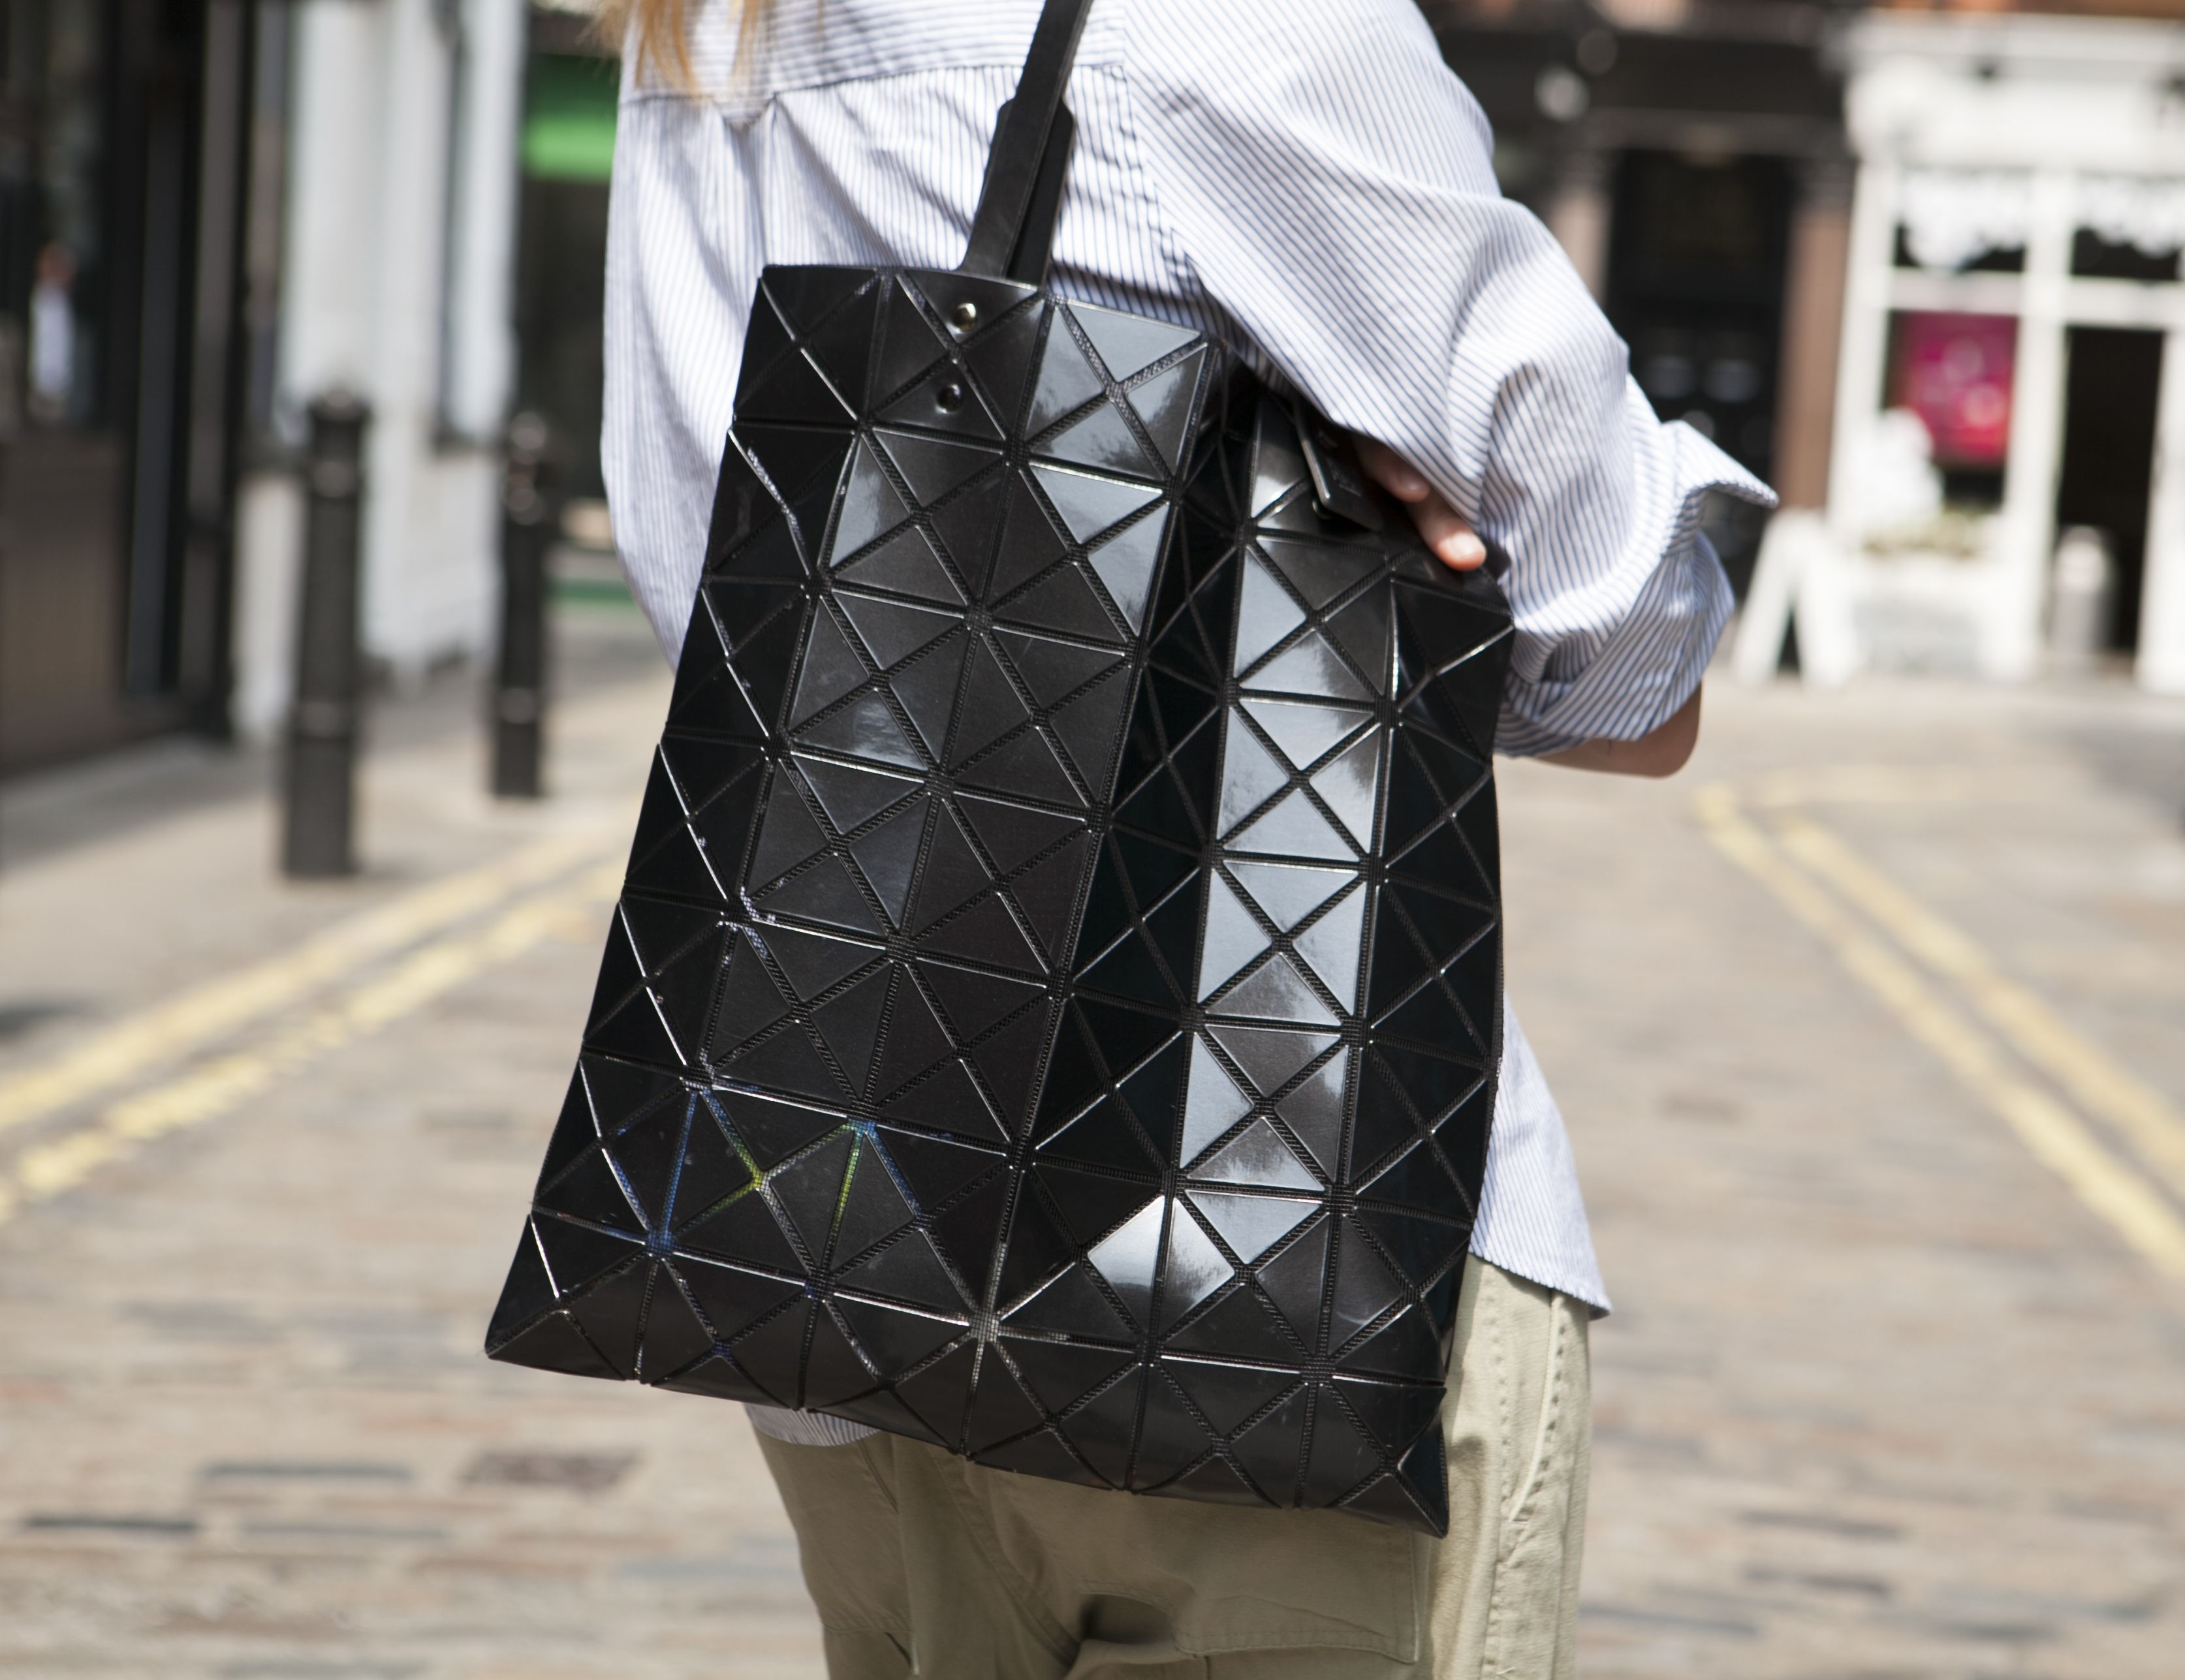 ... wear for every occasion from work to a wedding. Bao Bao Issey Miyake bag e756a76b125c6